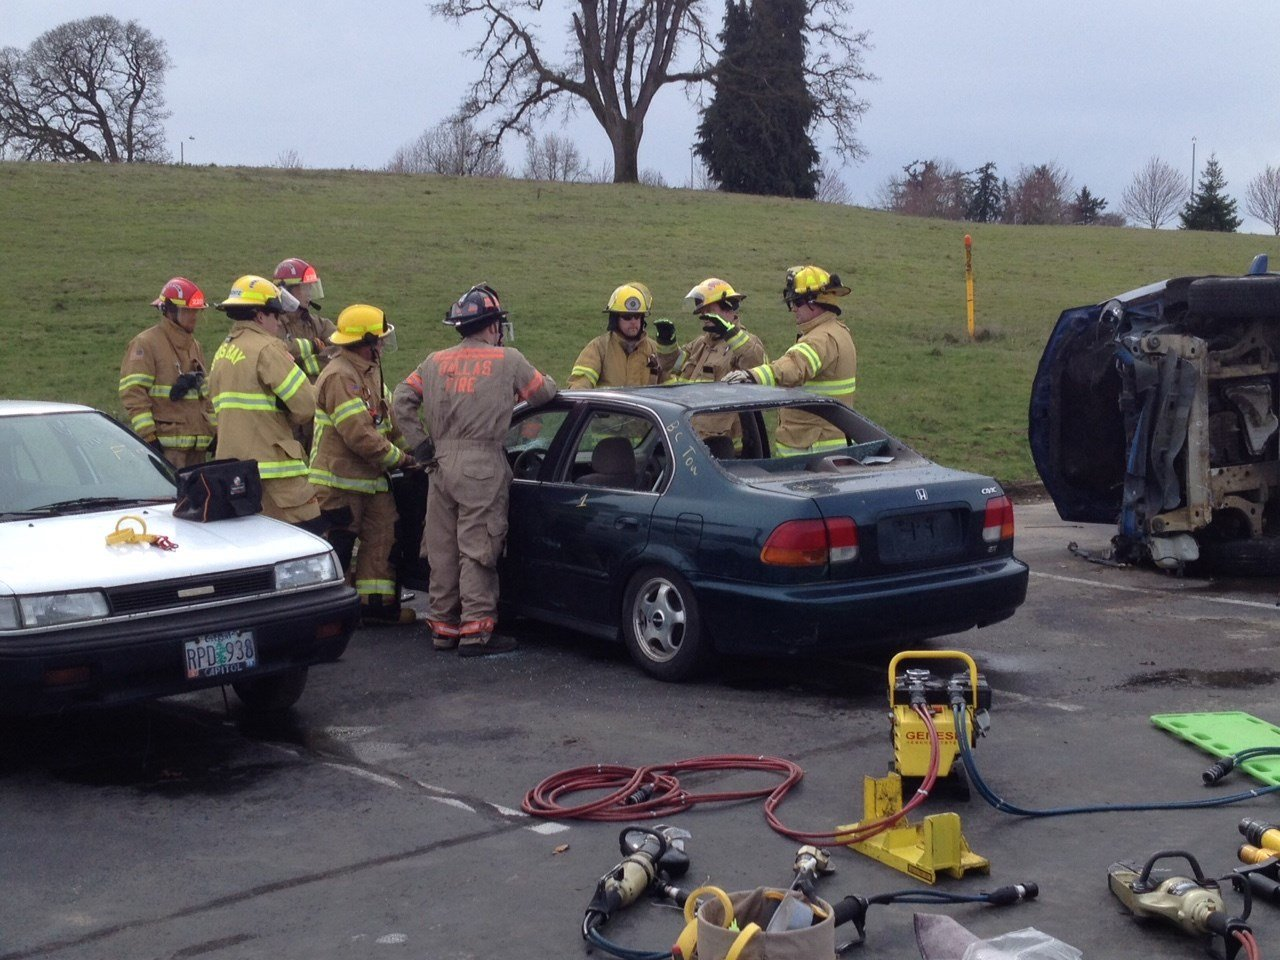 Courtesy: Oregon Department of Public Safety Standards and Training.